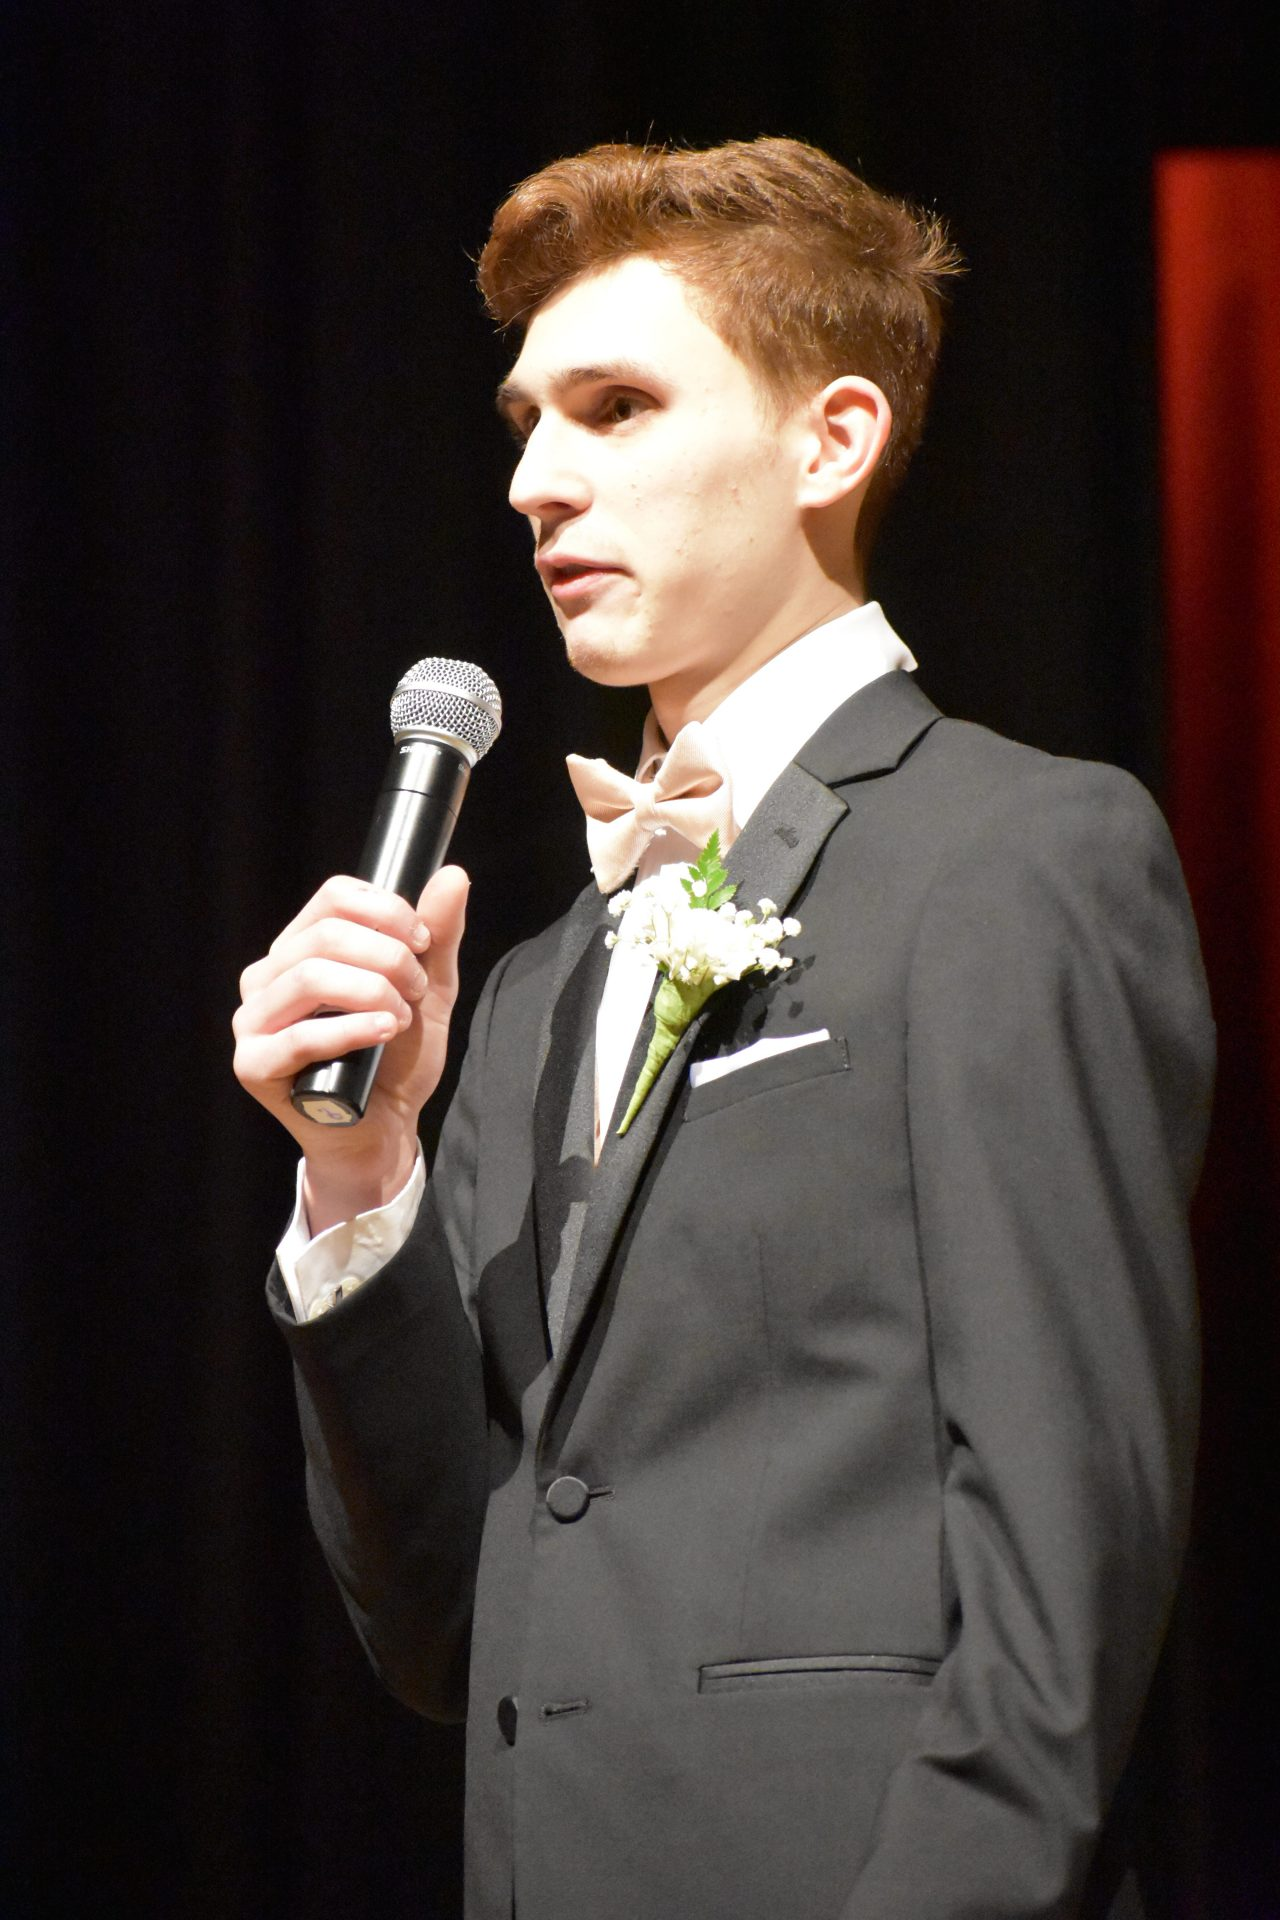 Patrick Lawrence speaking during formal Mr. Voc Tech segment